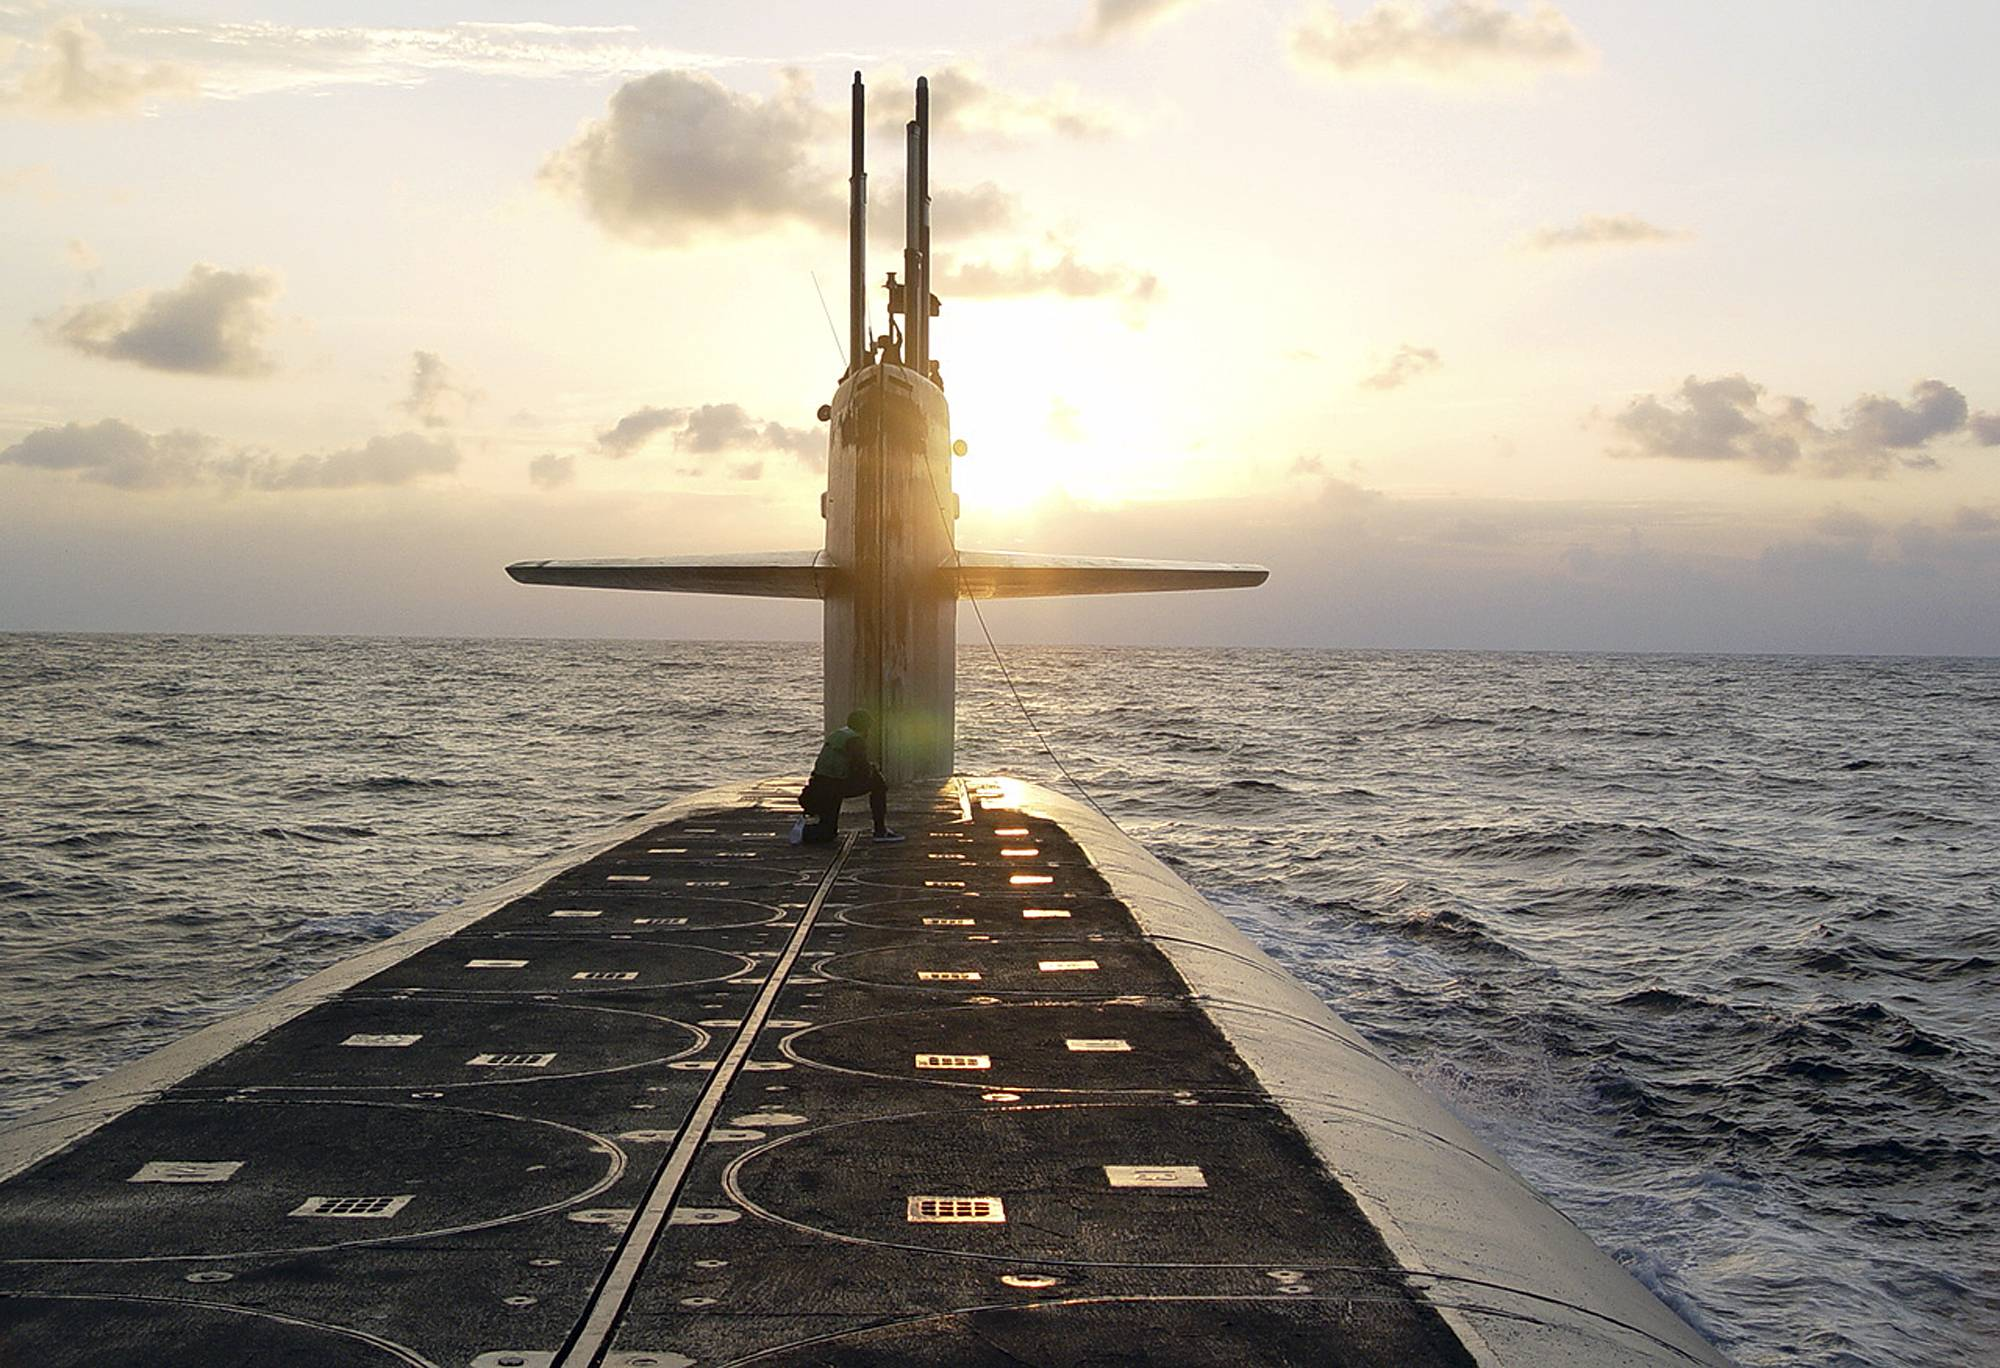 FILE - In this Jan. 9, 2008 photo released by the U.S. Navy, The Ohio-class ballistic-missile submarine USS Wyoming approaches Naval Submarine Base Kings Bay, Ga. The Pentagon's top policy official tells The Associated Press that the United States for the first time has deployed the newest addition to its nuclear arsenal — a submarine-launched weapon that the Trump administration says will make nuclear war less likely.  (Lt. Rebecca Rebarich/U.S. Navy via AP)